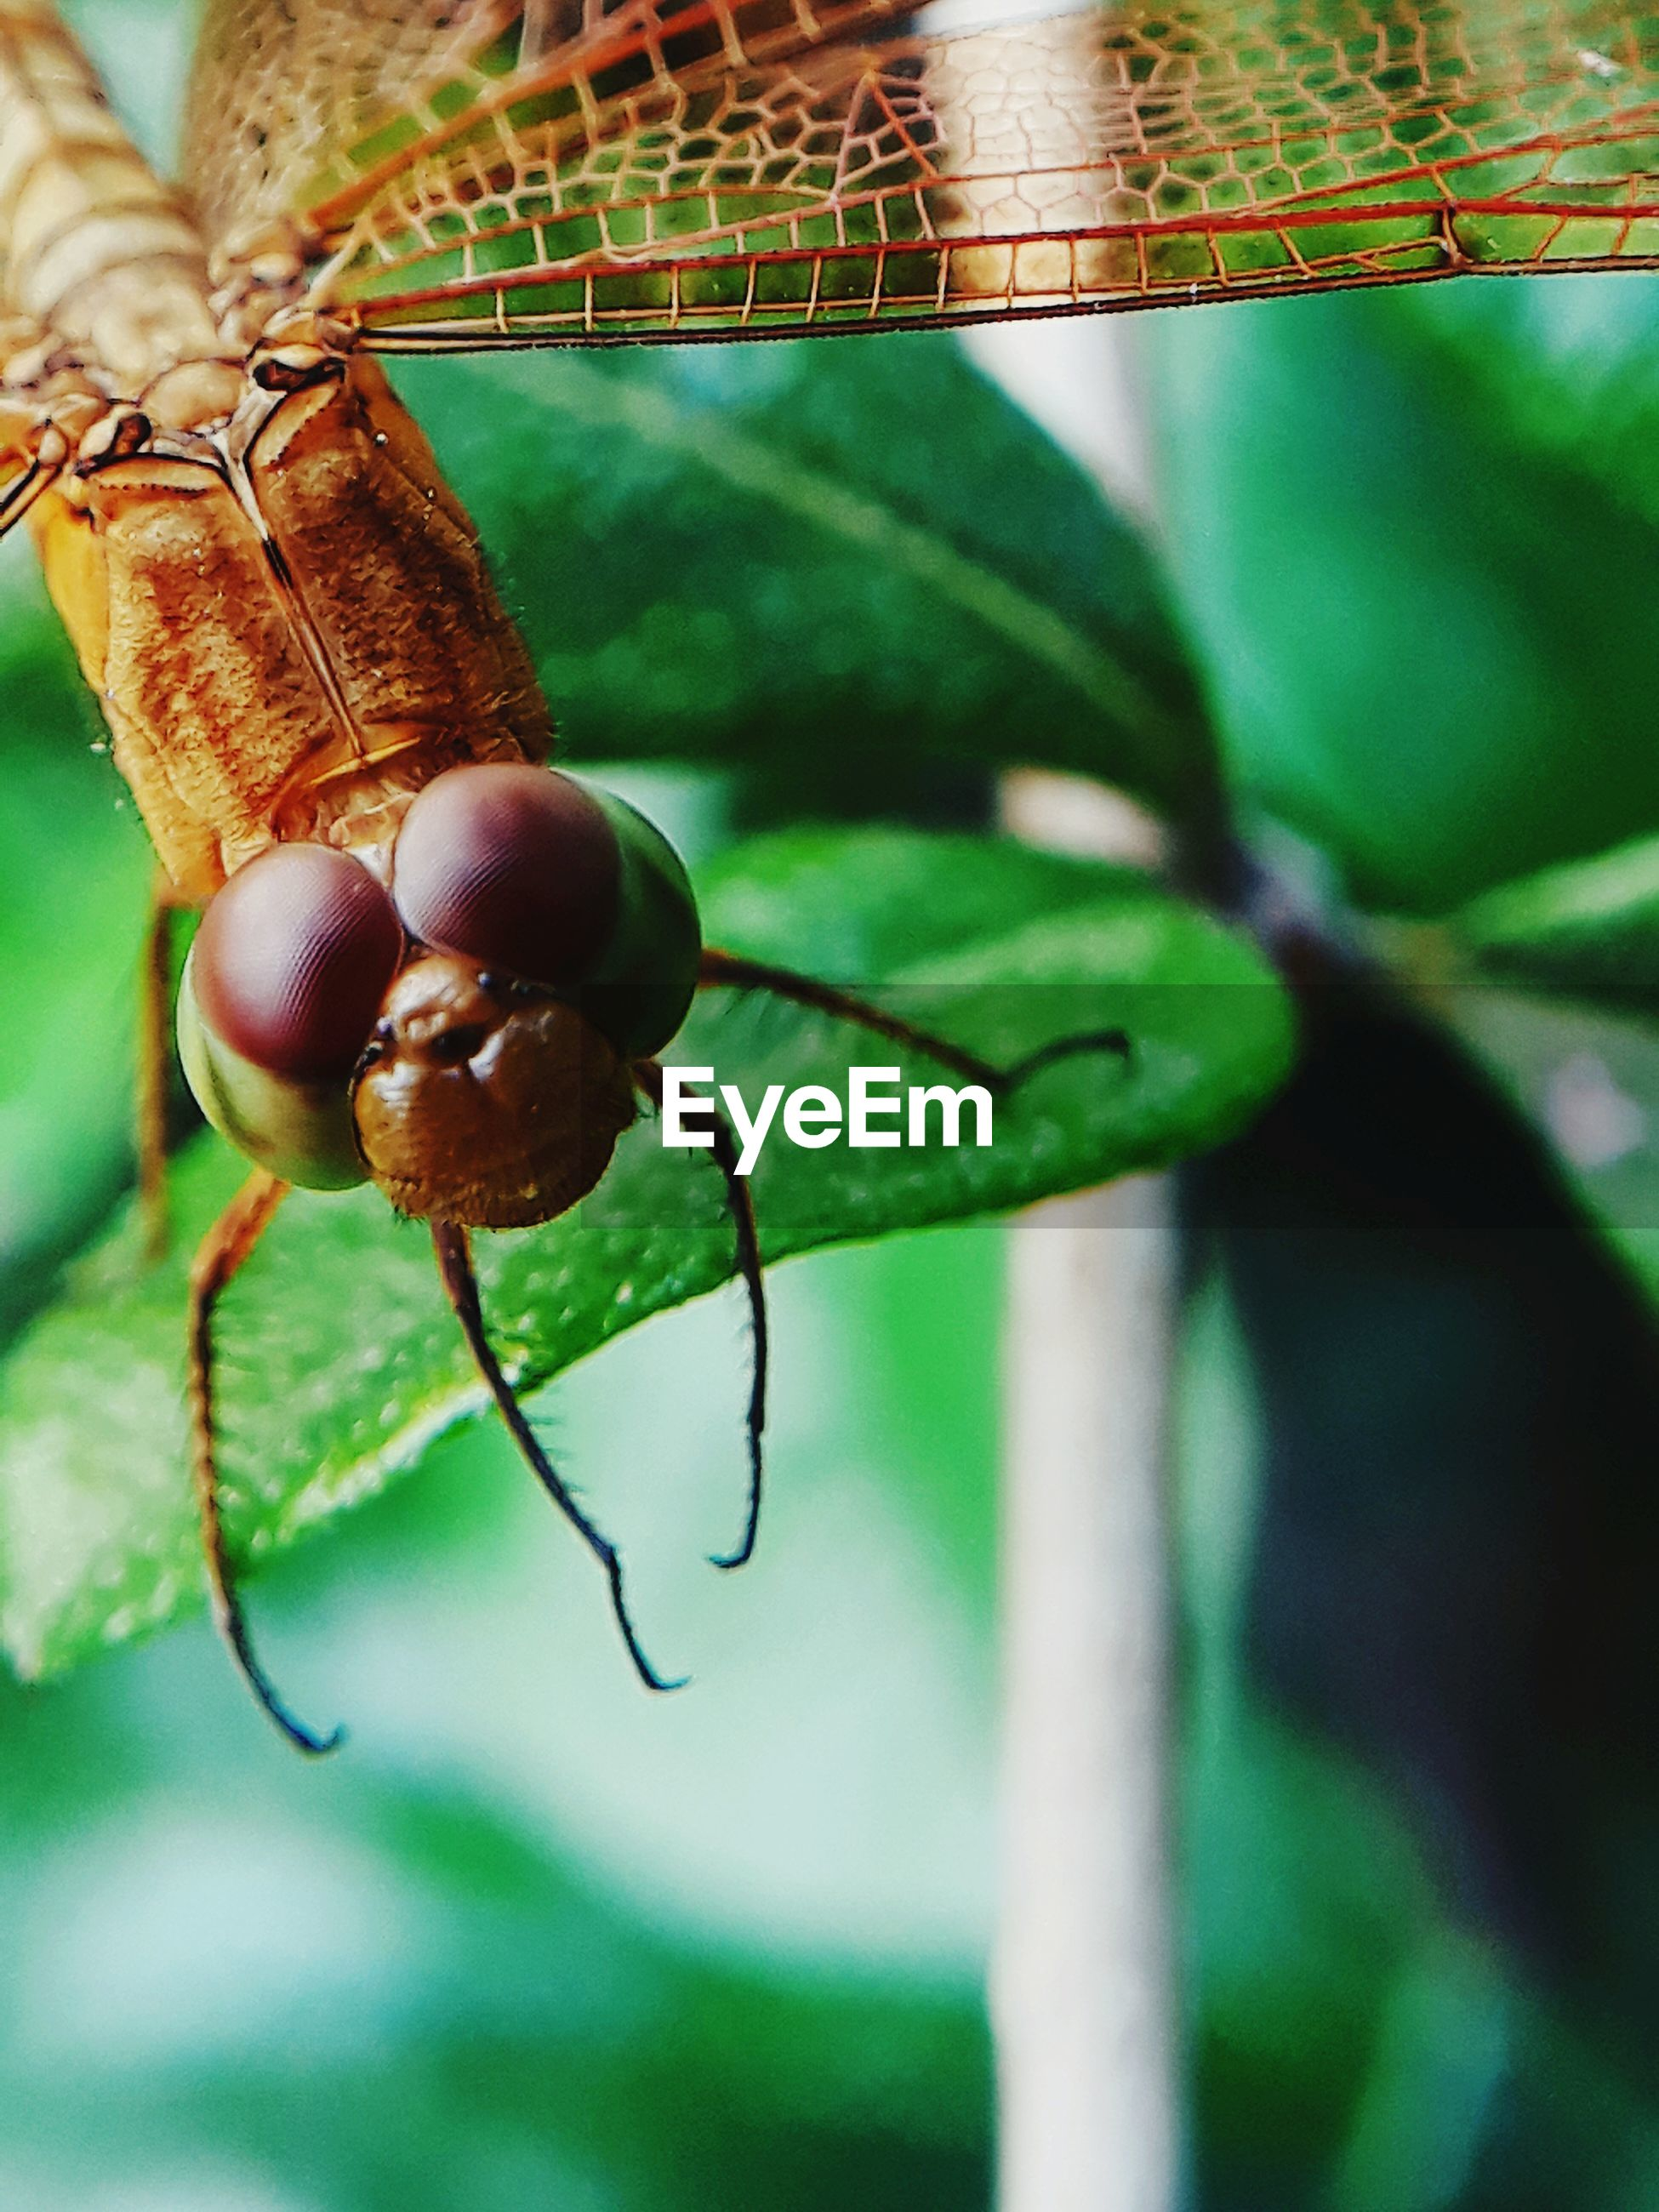 one animal, close-up, animal themes, animal, focus on foreground, leaf, animal wildlife, plant part, nature, insect, day, invertebrate, animals in the wild, plant, no people, green color, food, outdoors, food and drink, growth